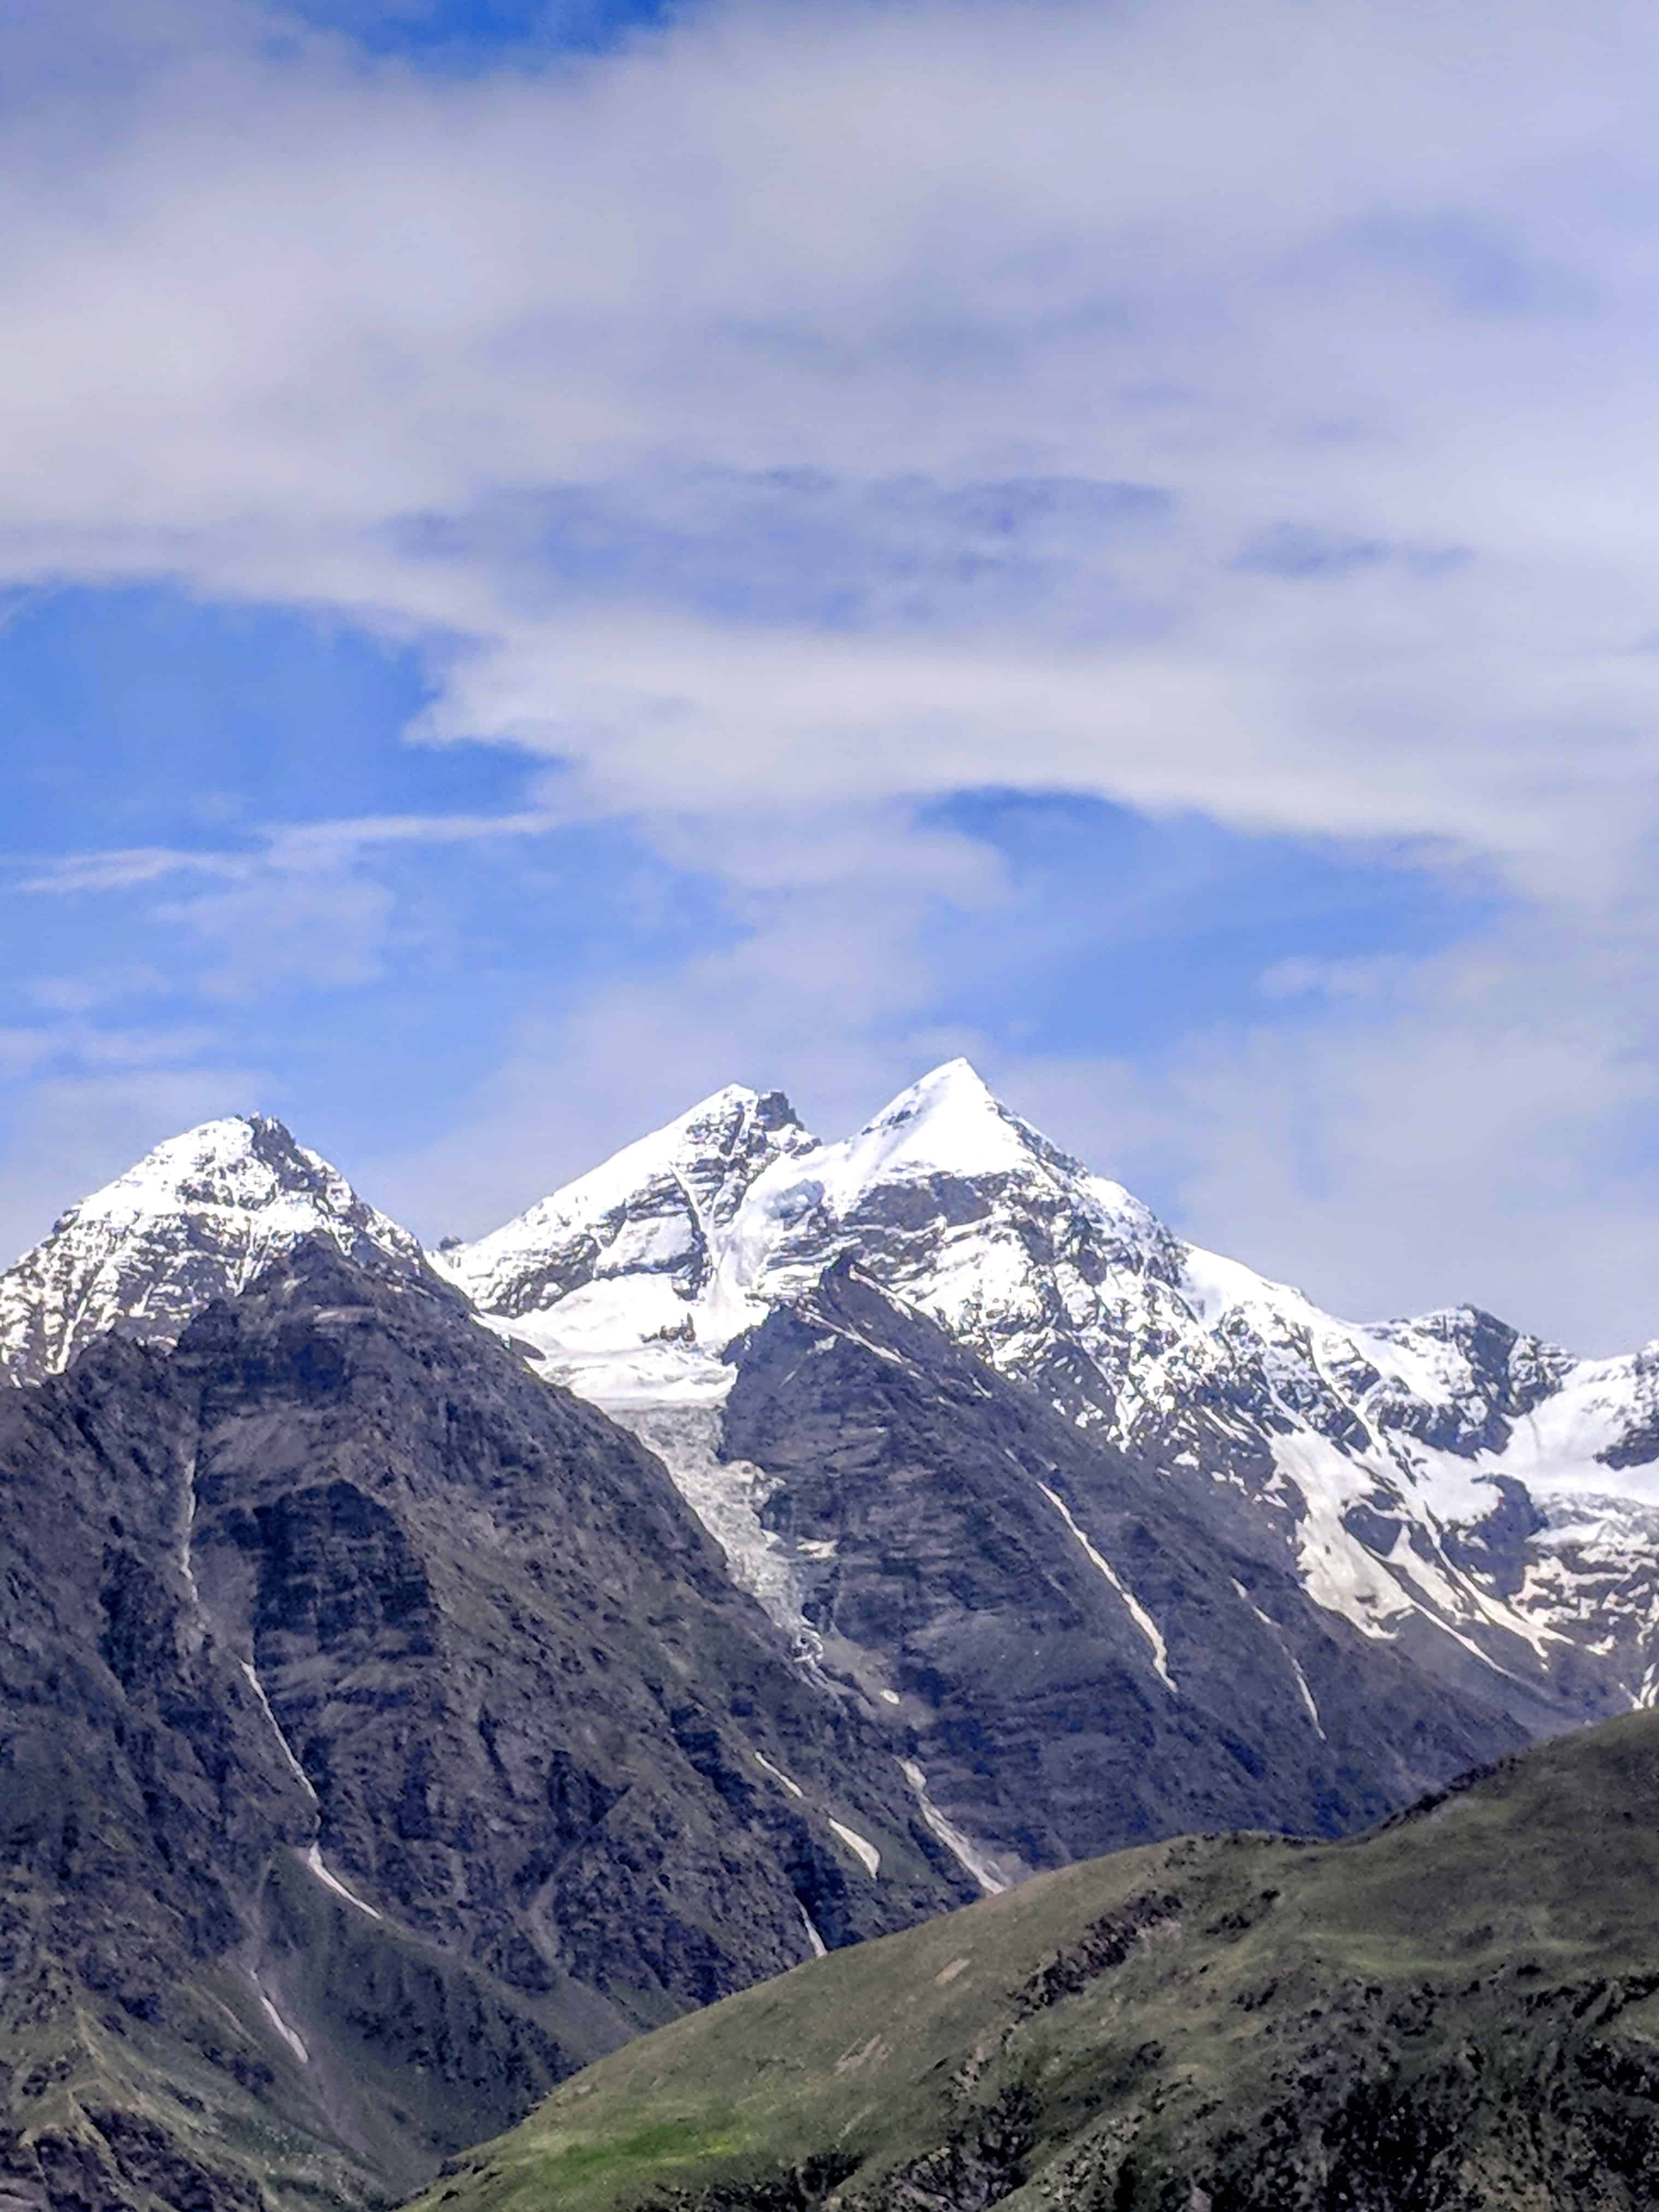 Enticing us to keep moving forward, the snow-capped mountains around Rohtang-La